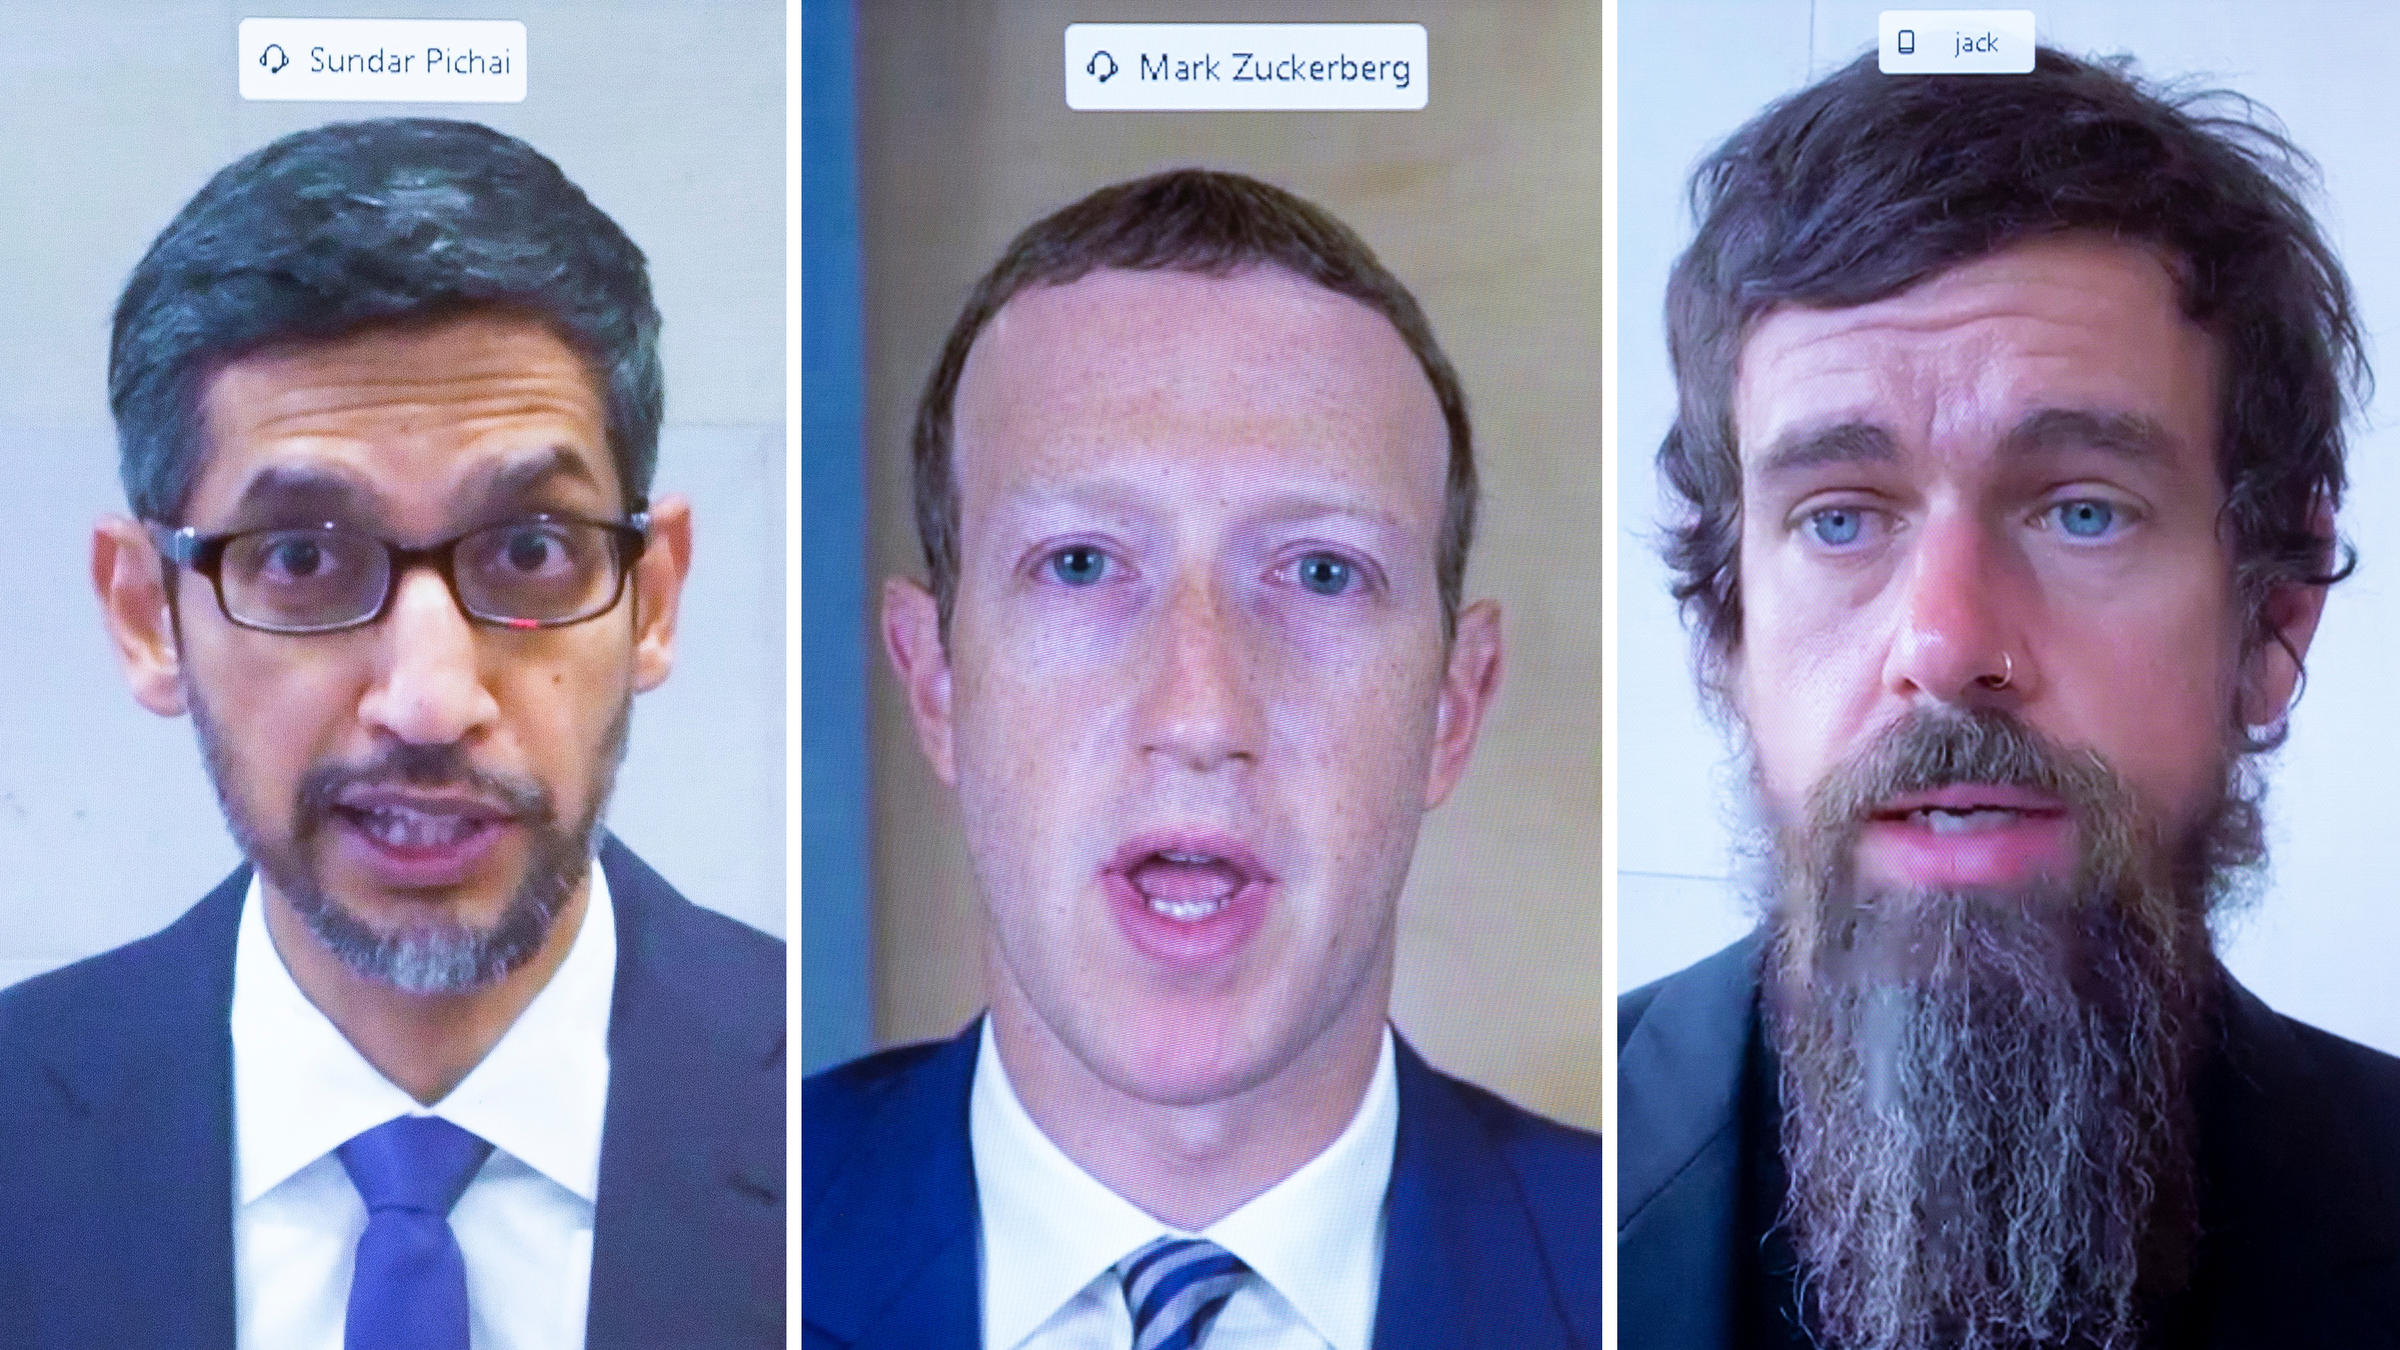 Facebook, Twitter, and Google CEOs Testify Before Congress About Misinformation and Online Extremism